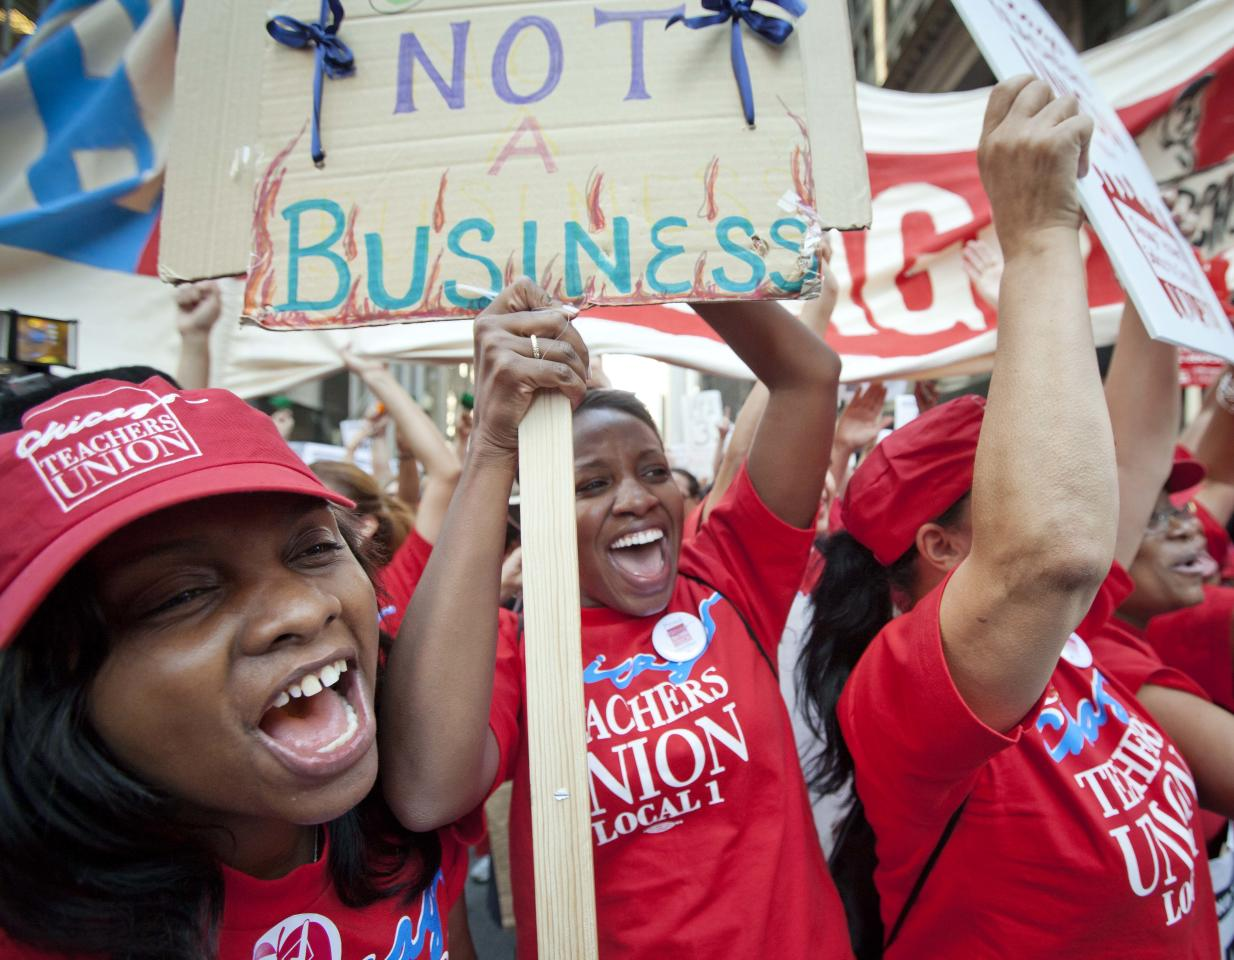 Public school teachers cheer as Chicago Teachers Union President Karen Lewis, unseen, arrives unexpectedly to address a rally of thousands of teachers gathered for the second consecutive day outside the Chicago Board of Education district headquarters on Tuesday, Sept. 11, 2012 in Chicago. Teachers walked off the job Monday for the first time in 25 years over issues that include pay raises, classroom conditions, job security and teacher evaluations. (AP Photo/Sitthixay Ditthavong)